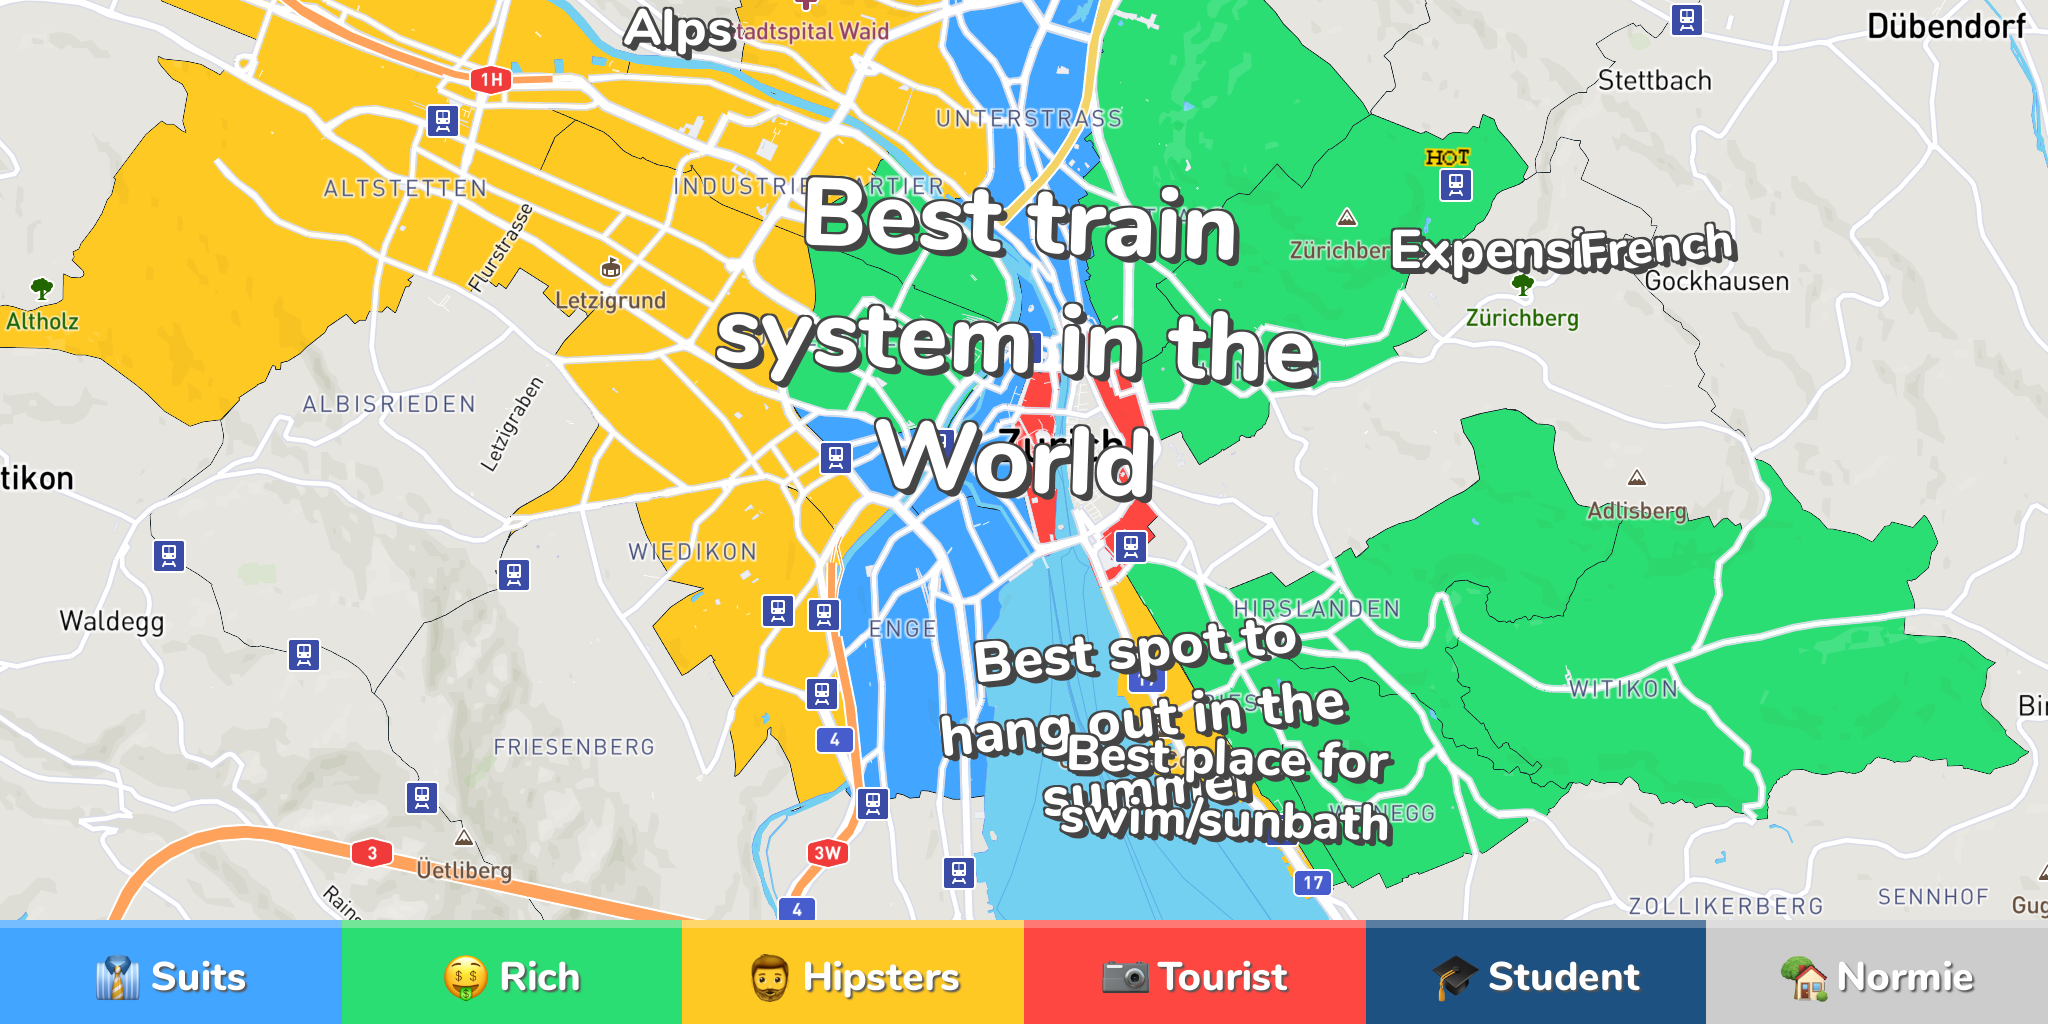 Where to Stay in Zurich: Neighborhood Map by 220 Locals on montreal neighborhood map, tokyo neighborhood map, barcelona neighborhood map, seoul neighborhood map, rio de janeiro neighborhood map, cape town neighborhood map, edinburgh neighborhood map, bangkok neighborhood map, santiago neighborhood map, merida neighborhood map, basel neighborhood map, bogota neighborhood map, madrid neighborhood map, brussels neighborhood map, warsaw neighborhood map, auckland neighborhood map, calgary neighborhood map, sydney neighborhood map, nairobi neighborhood map,